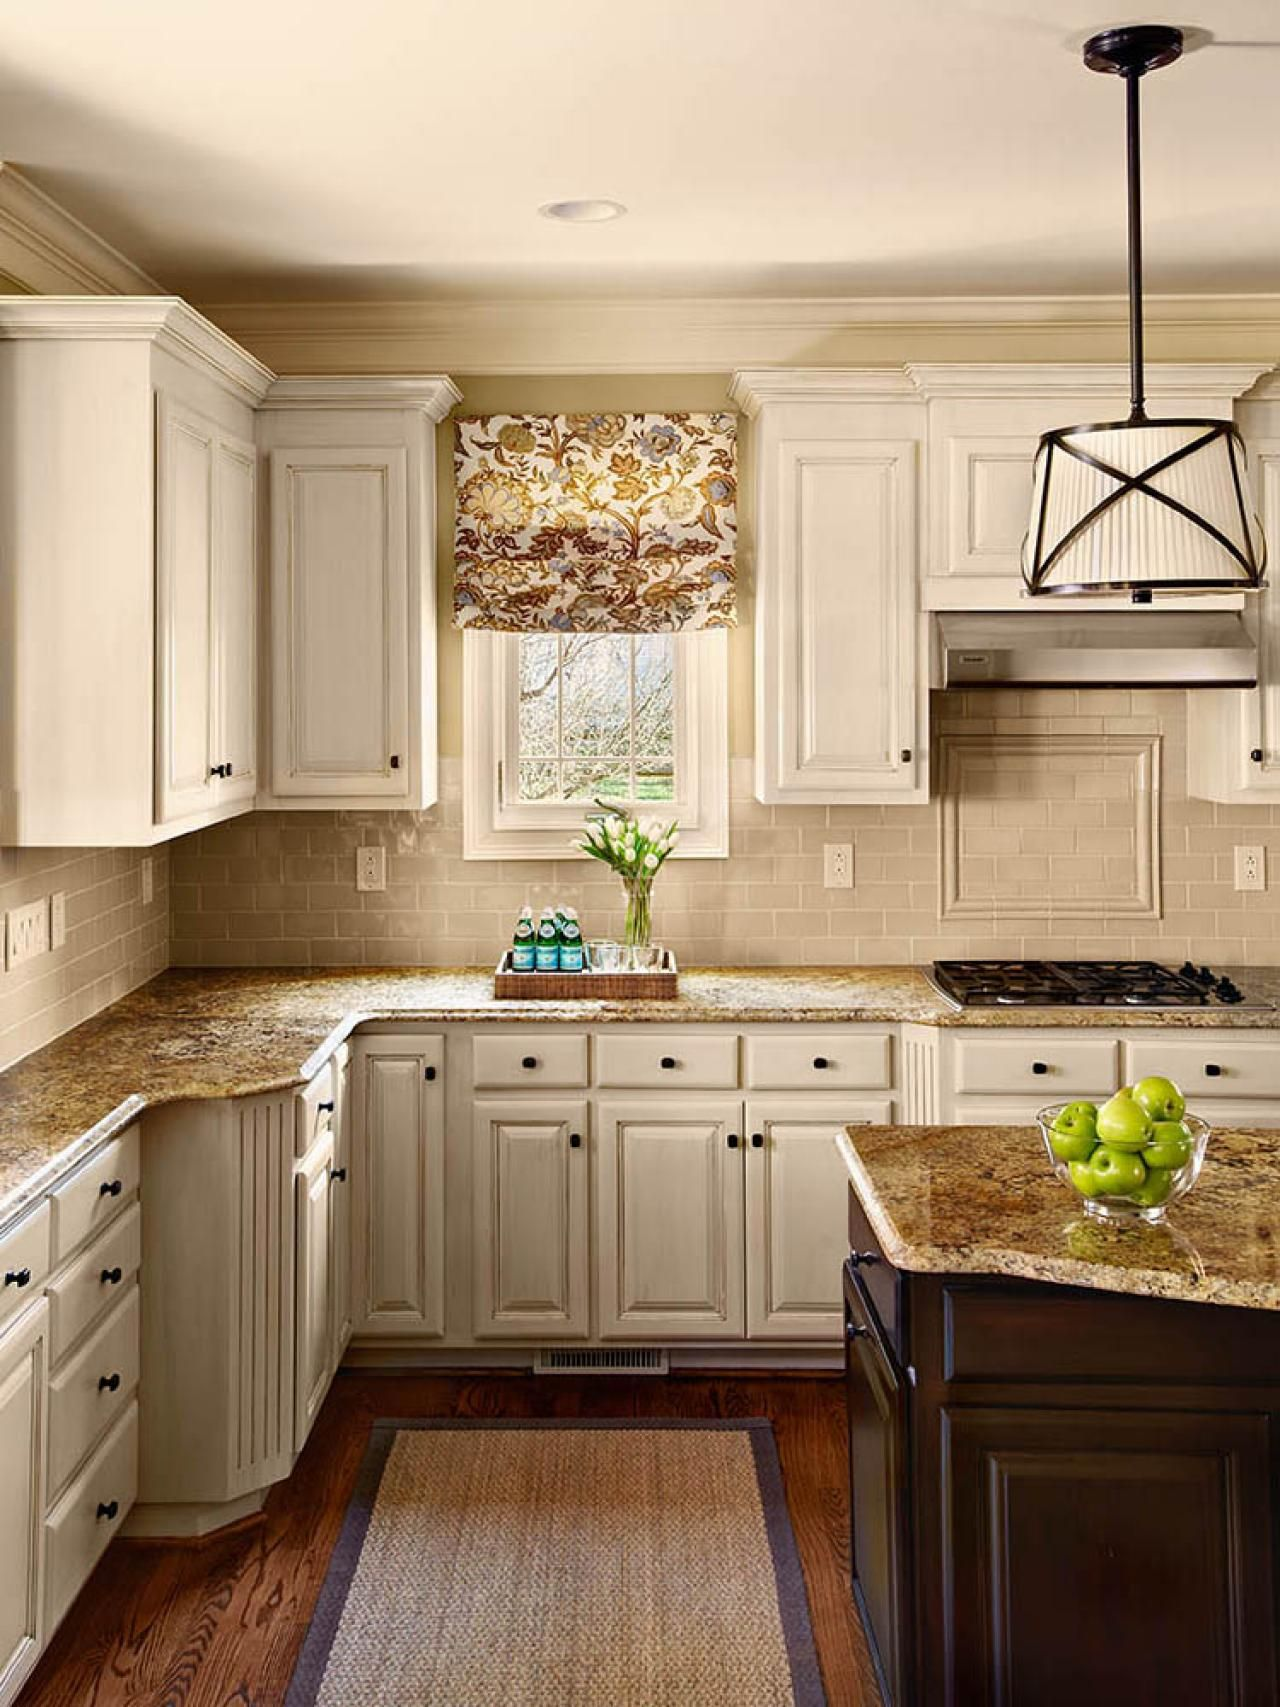 Resurfacing Kitchen Cabinets: Pictures & Ideas From | Picture ...